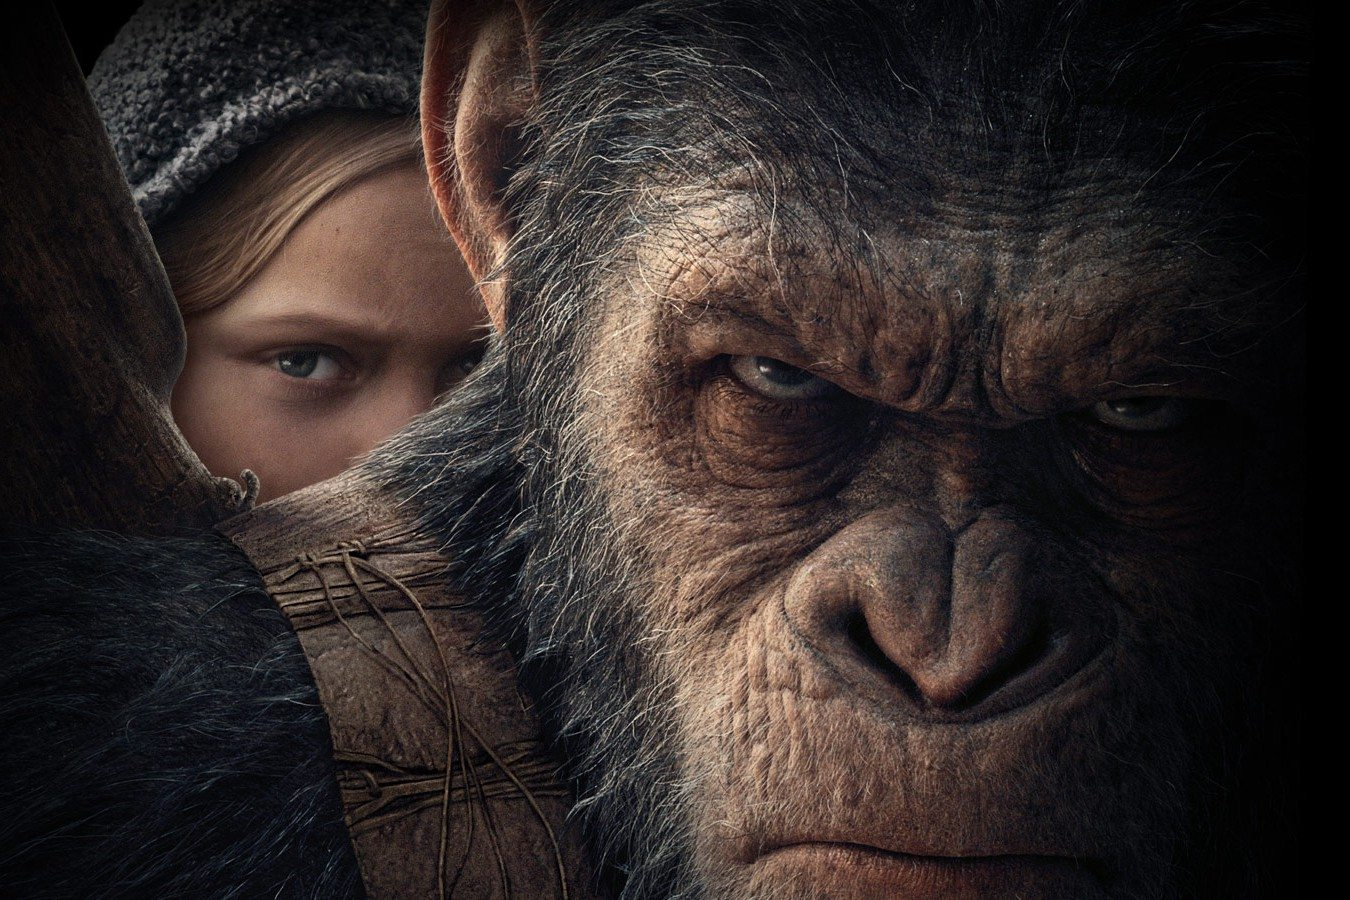 'War For The Planet Of The Apes' Is Both The Worst And Best Of Its Own Series